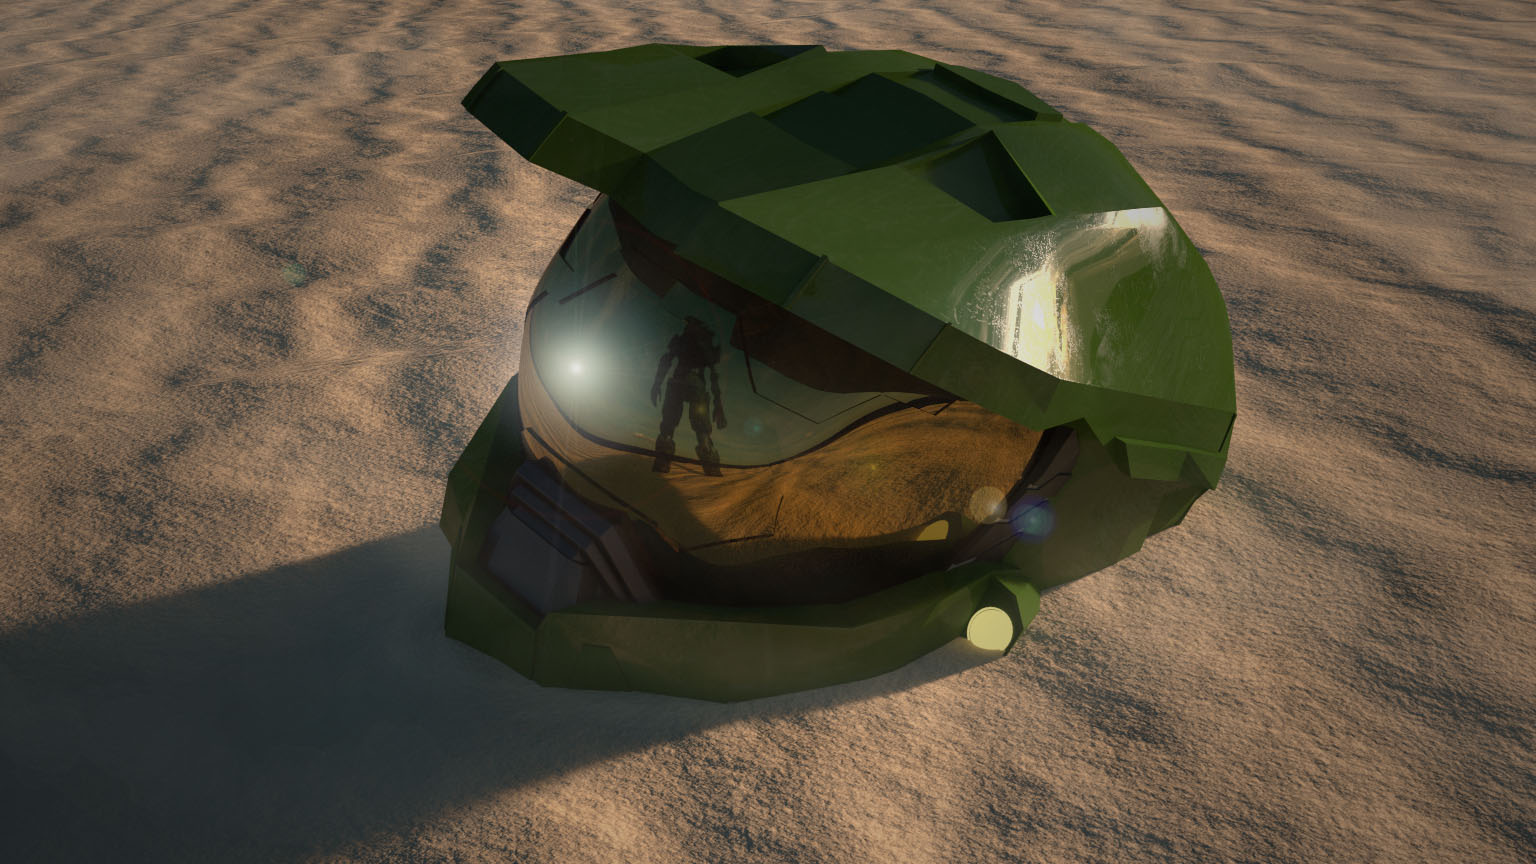 Halo Master Chief Helmet Finished Projects Blender